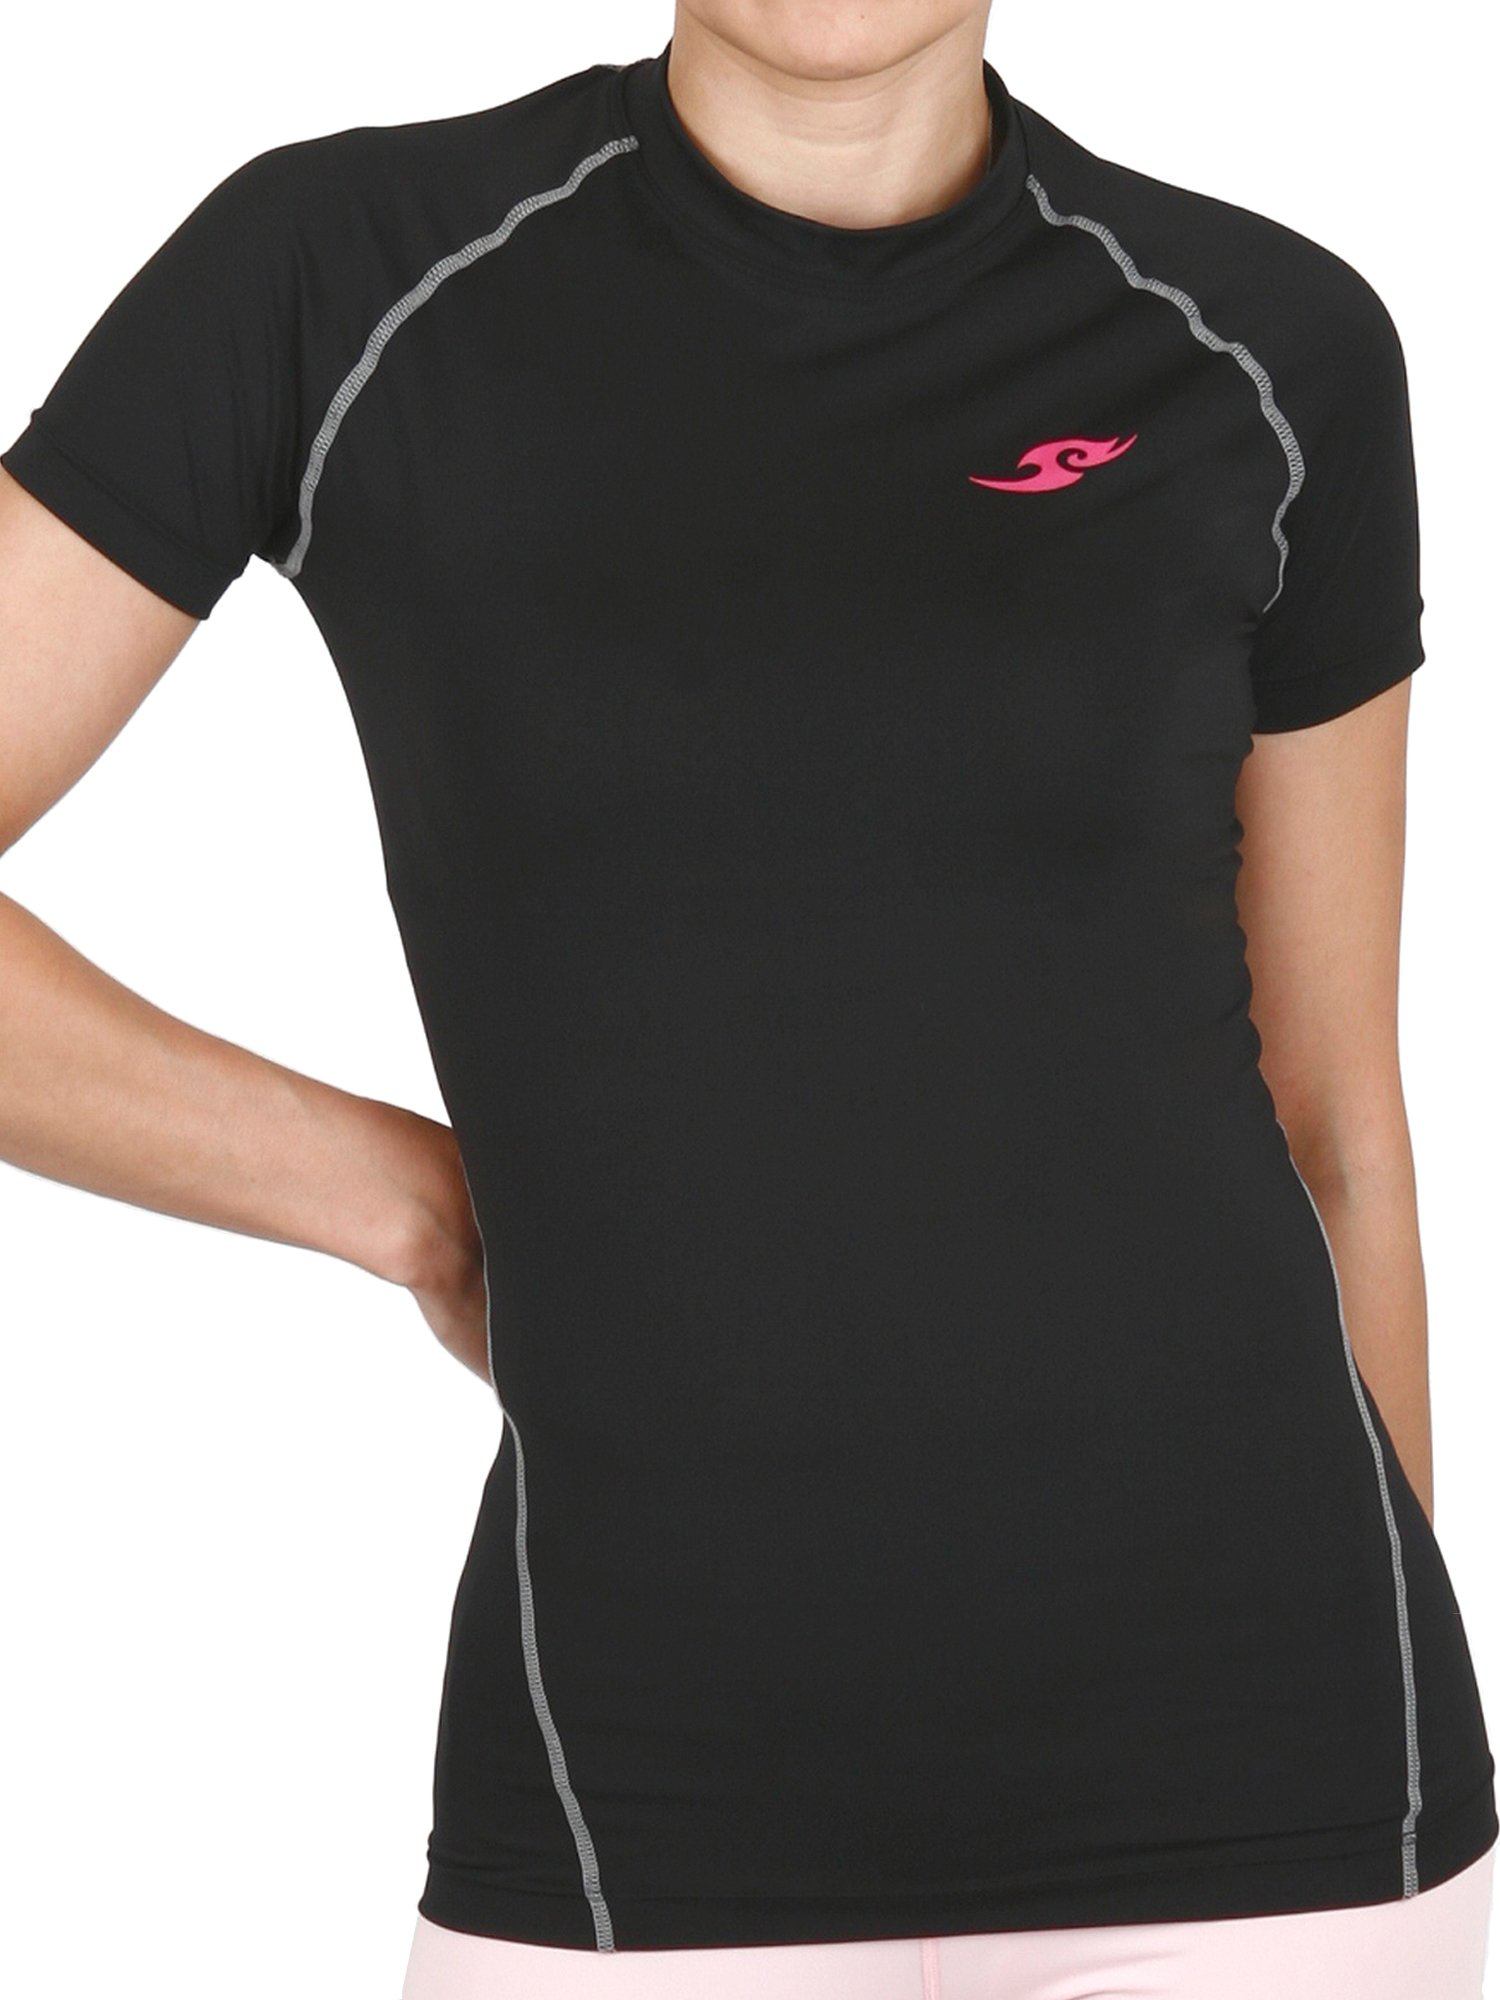 New 098 Womens Skin Tight Compression Baselayer T Shirt Short Sleeve Black (S)